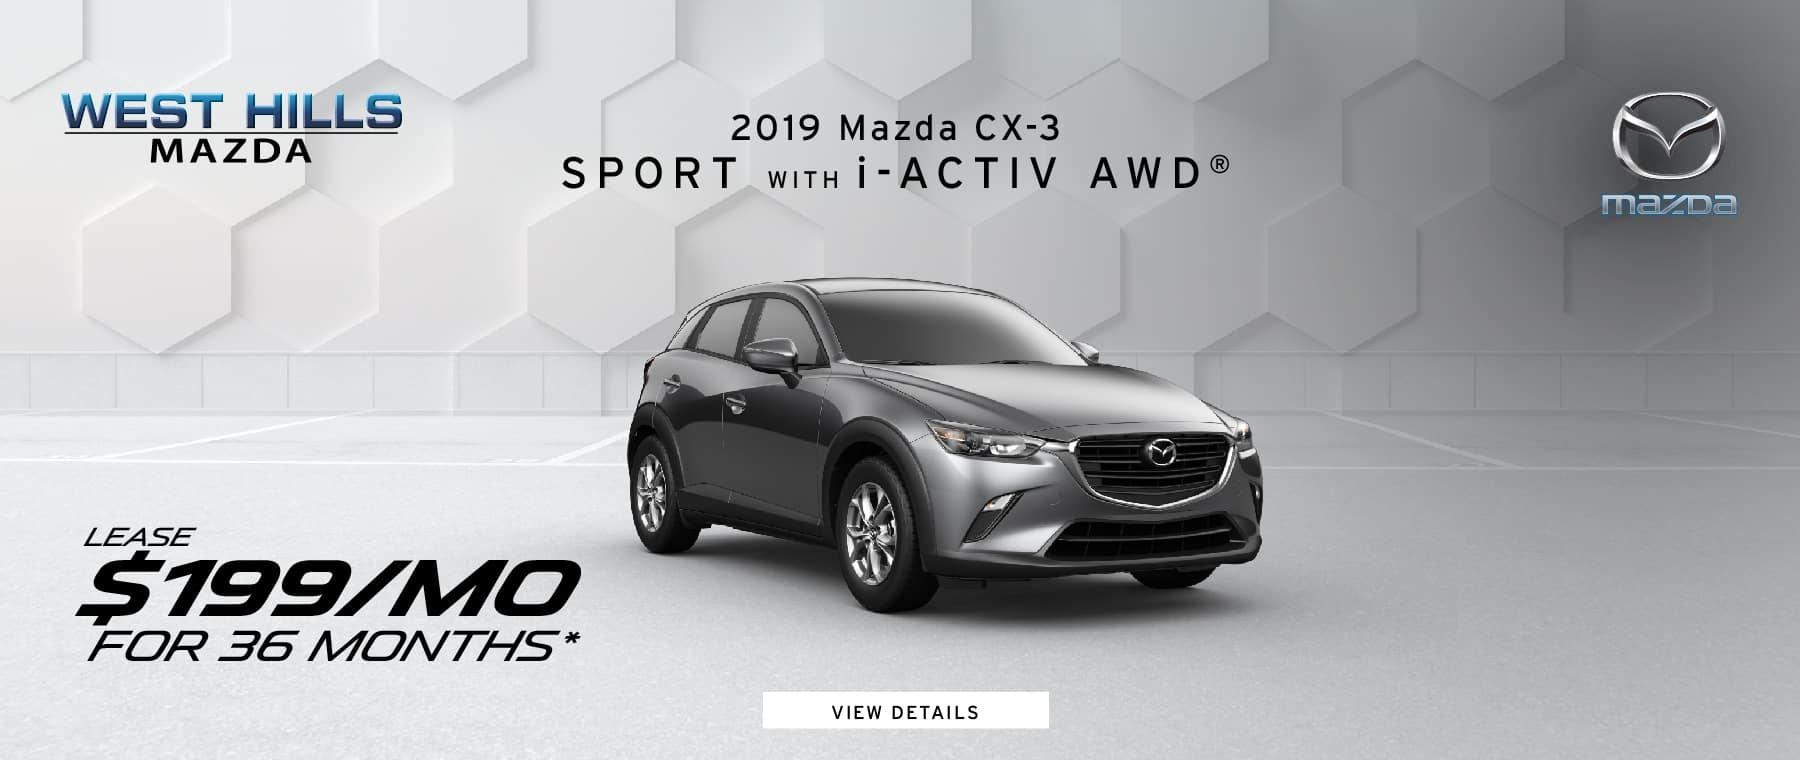 2019 Mazda CX-3 Sport w/  i-ACTIV AWD® (Featured Vehicle)  $199/mo. for 36 mos.* *$199 per month, 36-month lease for well qualified buyers. $2,995 due at lease signing; includes a $595 acquisition fee. No security deposit with approved credit. Excludes taxes, title, and fees. Valid on VIN: JM1DKDB76K1419691. 36 monthly payments required. Not all lessees will qualify for lowest payment through participating lender. Residency restrictions apply. Lessee responsible for registration, insurance, maintenance, excess wear/tear & for mileage over 30,000 miles at $0.15/mile. Option to purchase at lease end. A negotiable dealer documentary service fee of up to $150 may be added to the sale price or capitalized cost. Offer Expires: 1/31/2019.